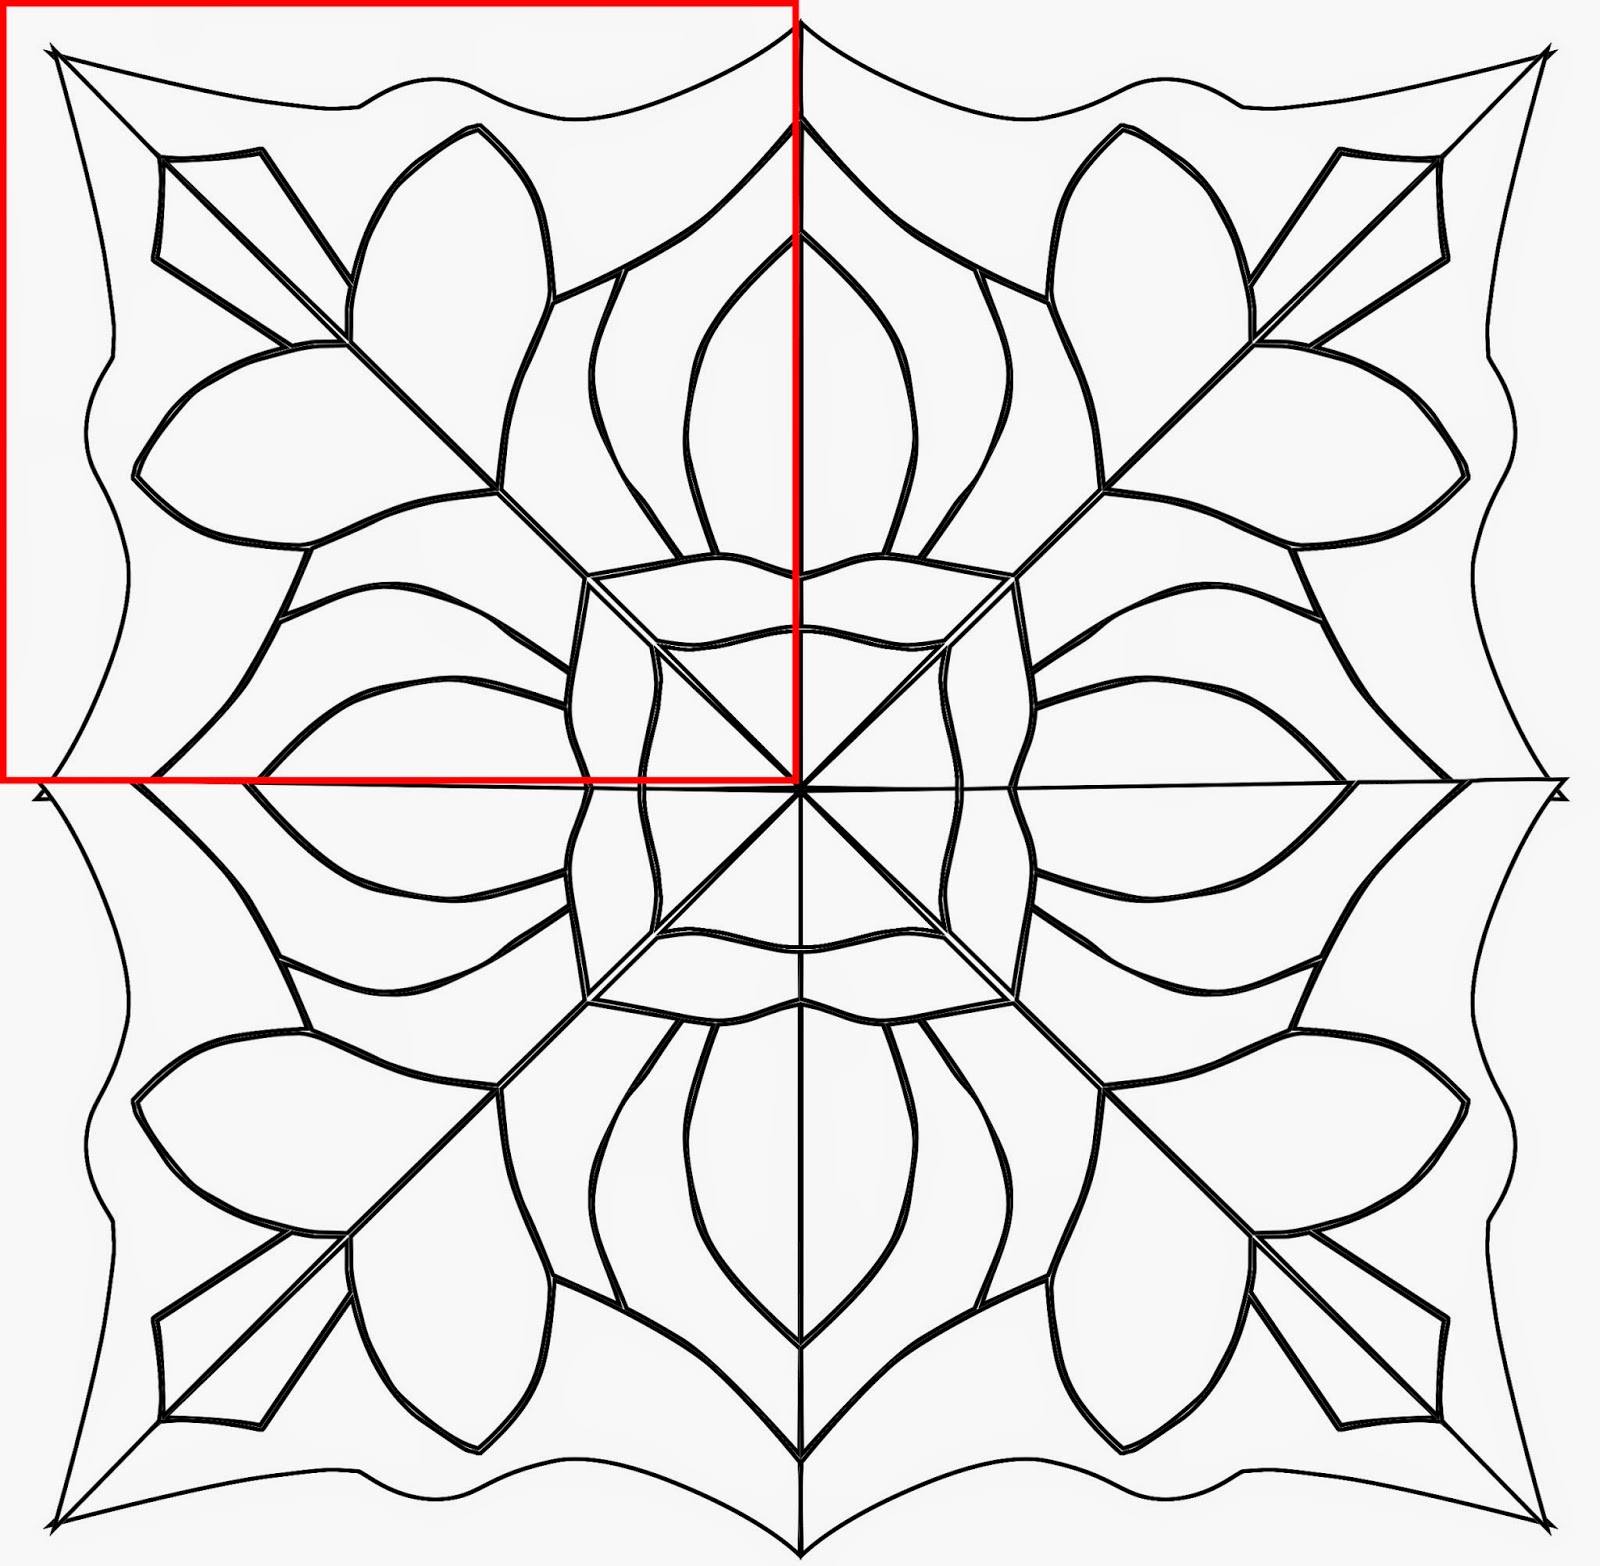 Line Art Solutions Ltd : Quilting solutions how do you make a rhapsody quilt